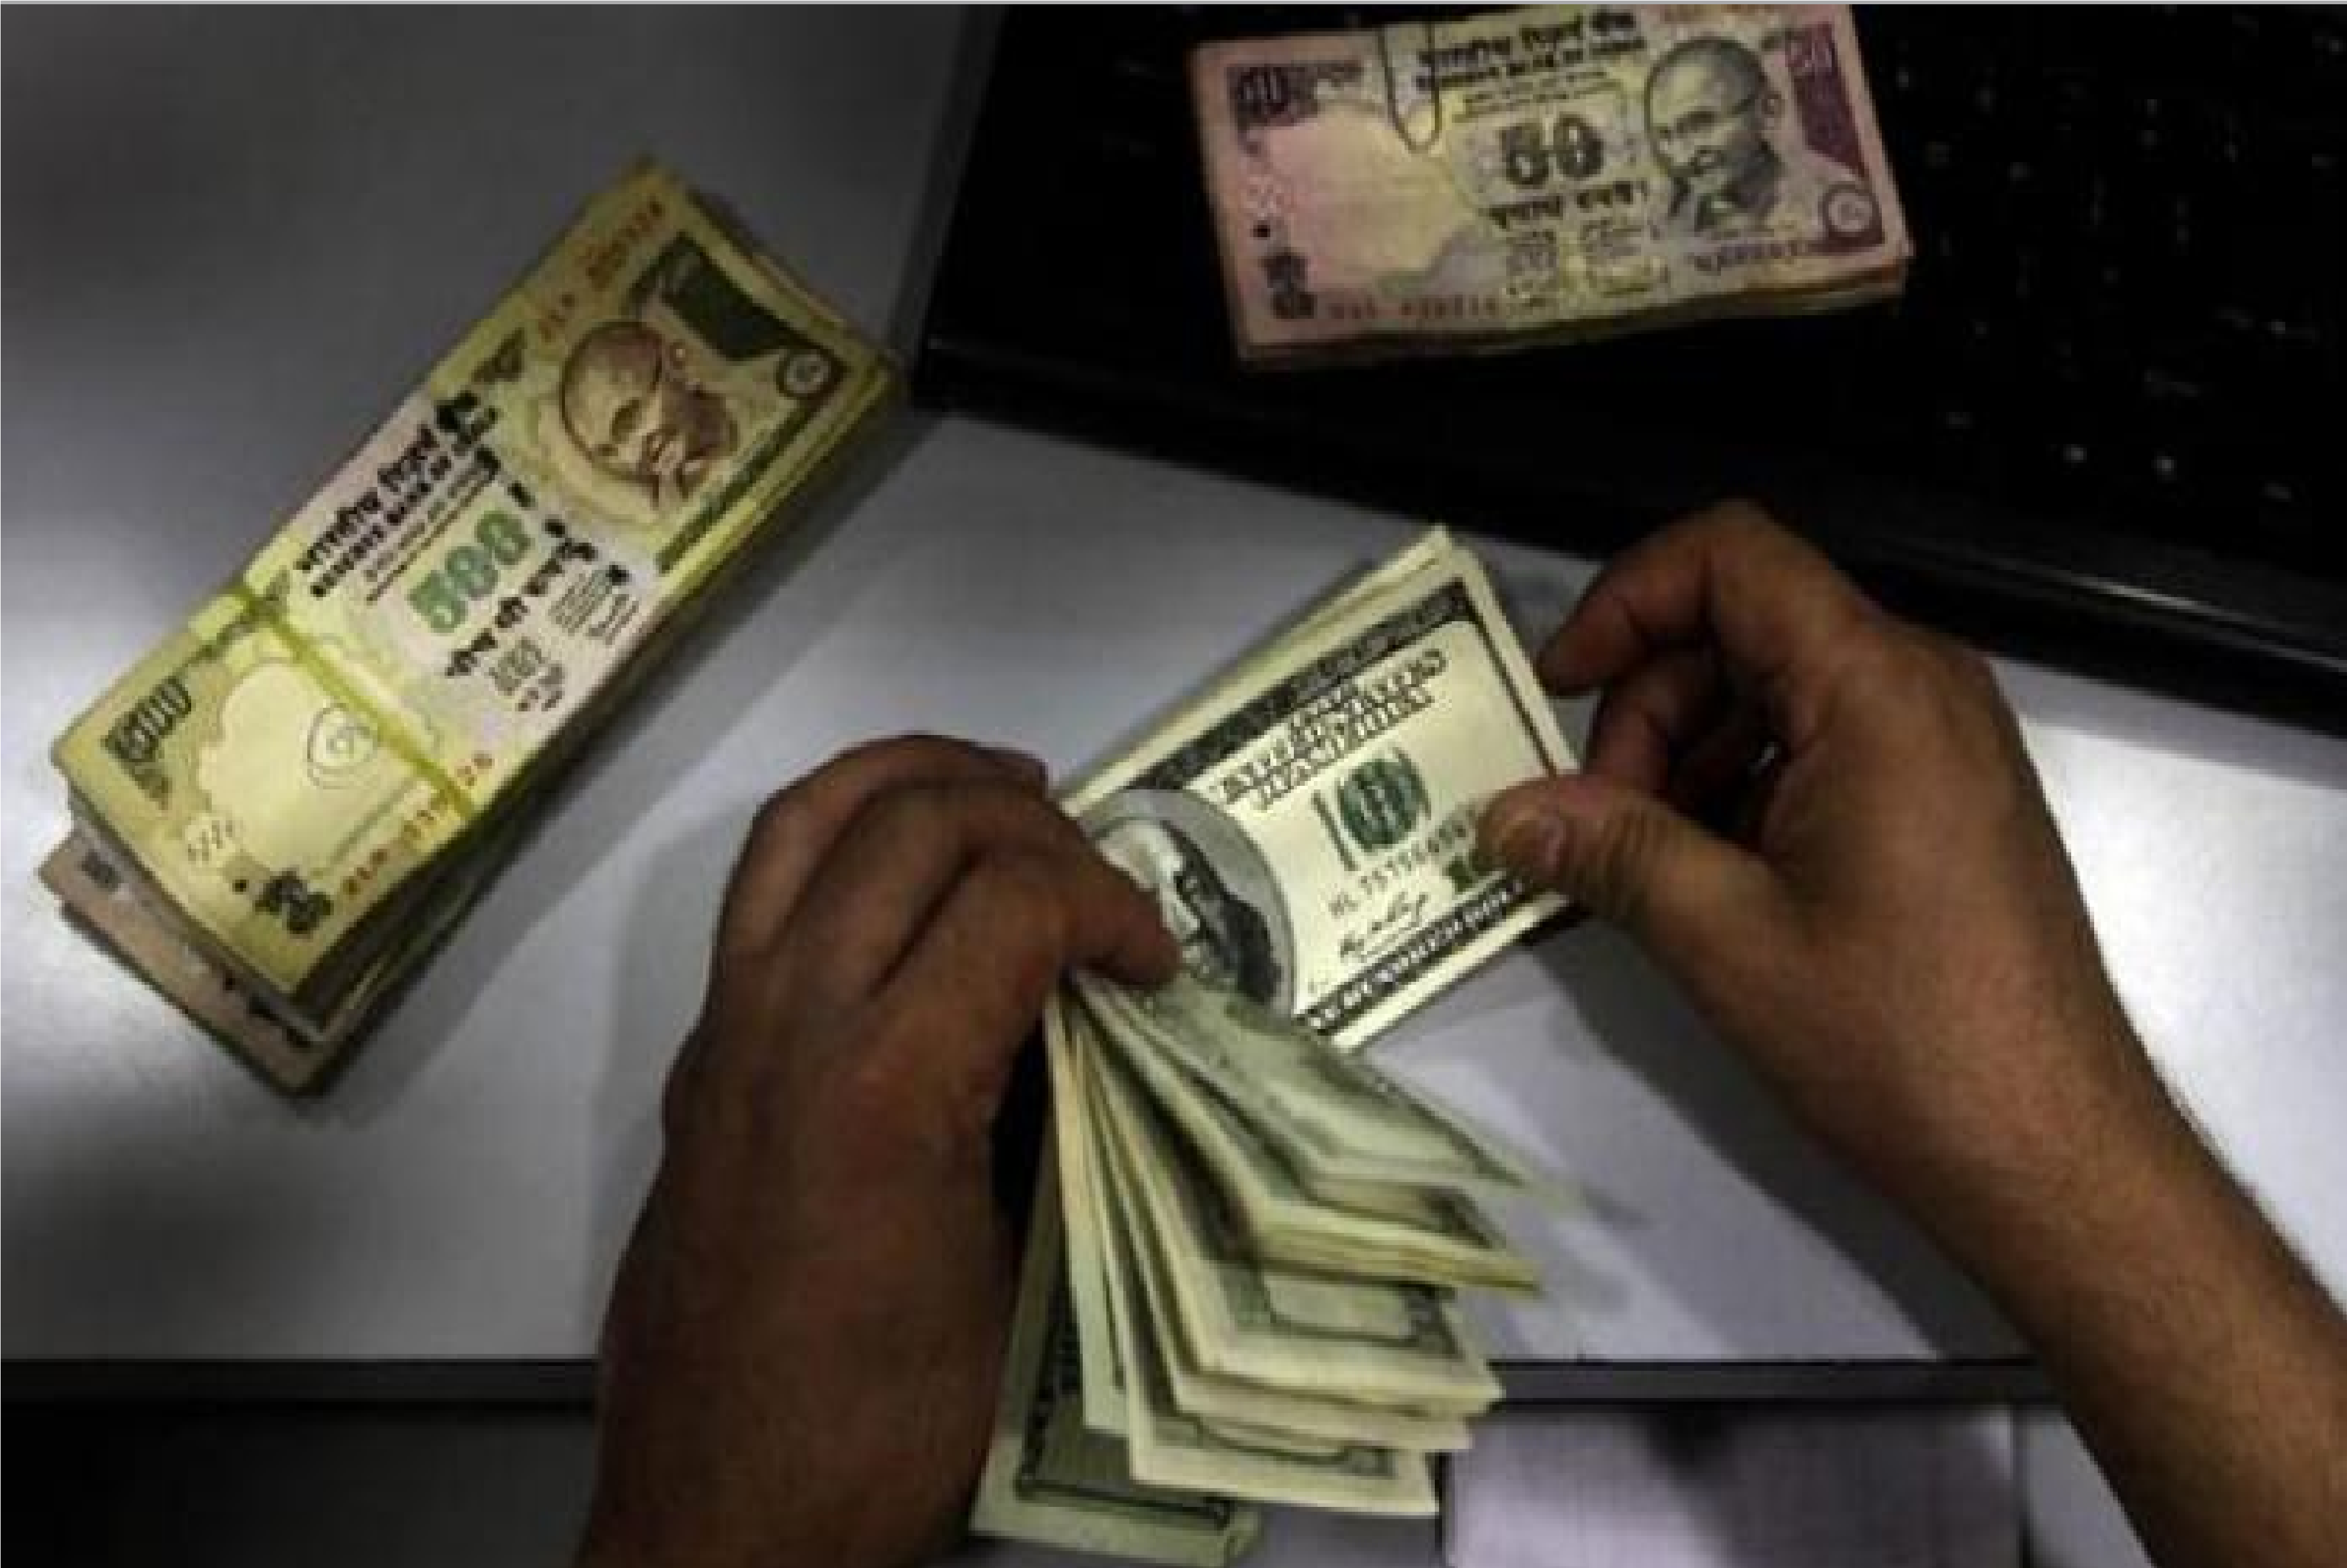 India amongst 10 wealthiest countries takes 7th spot